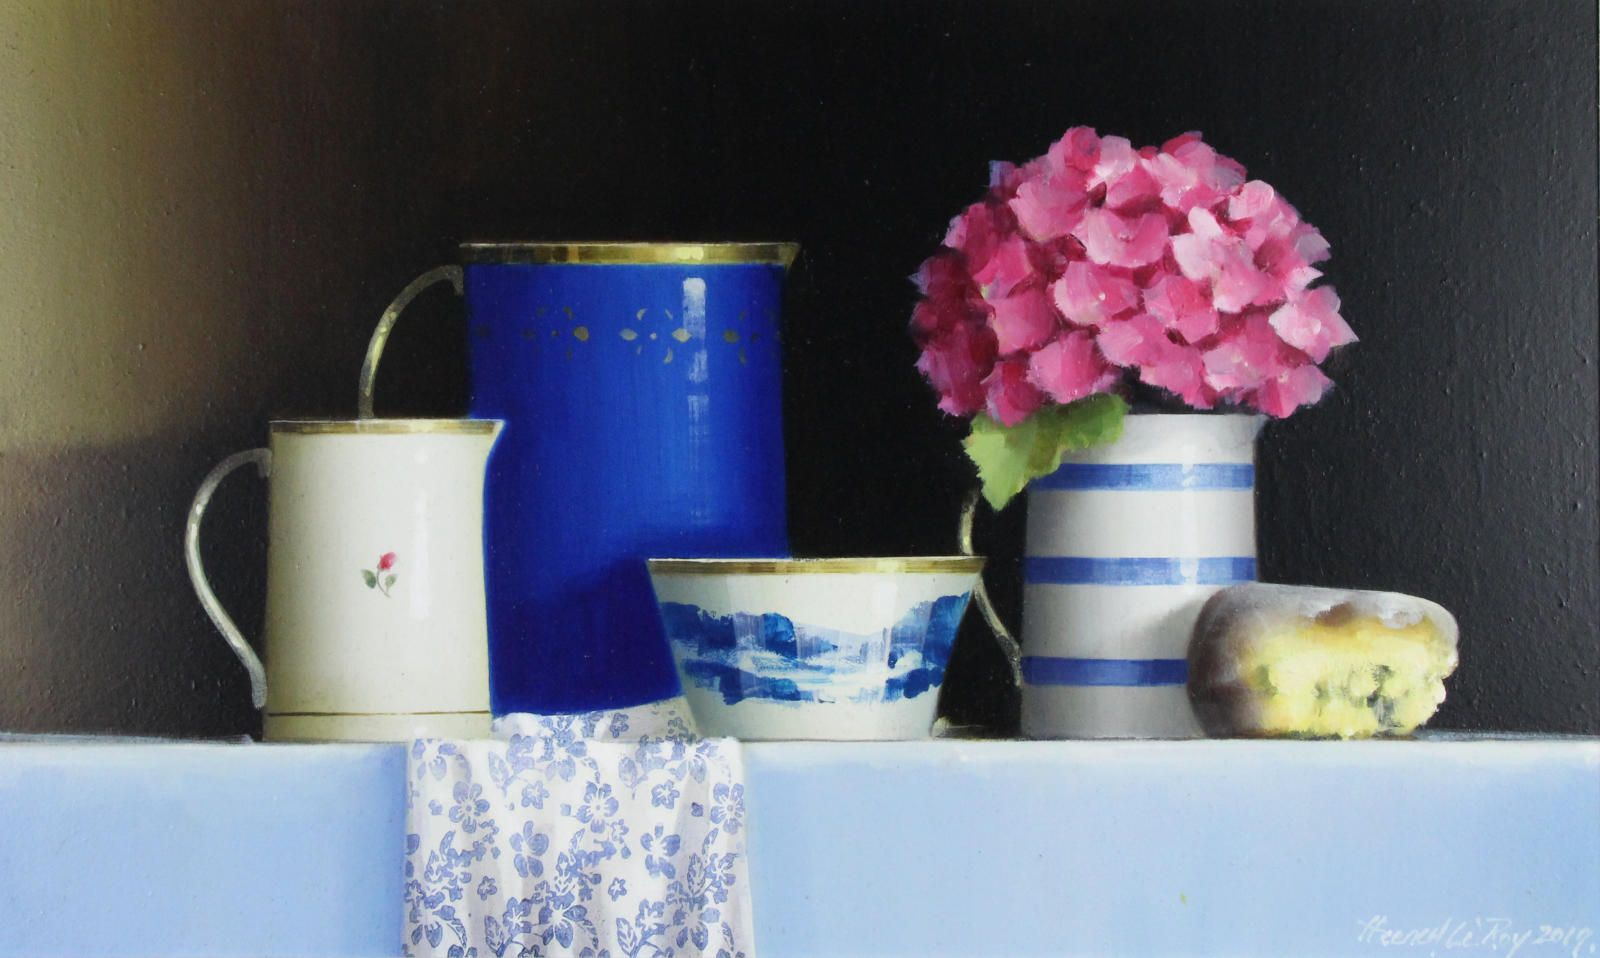 Blue Tableware with Hydrangea